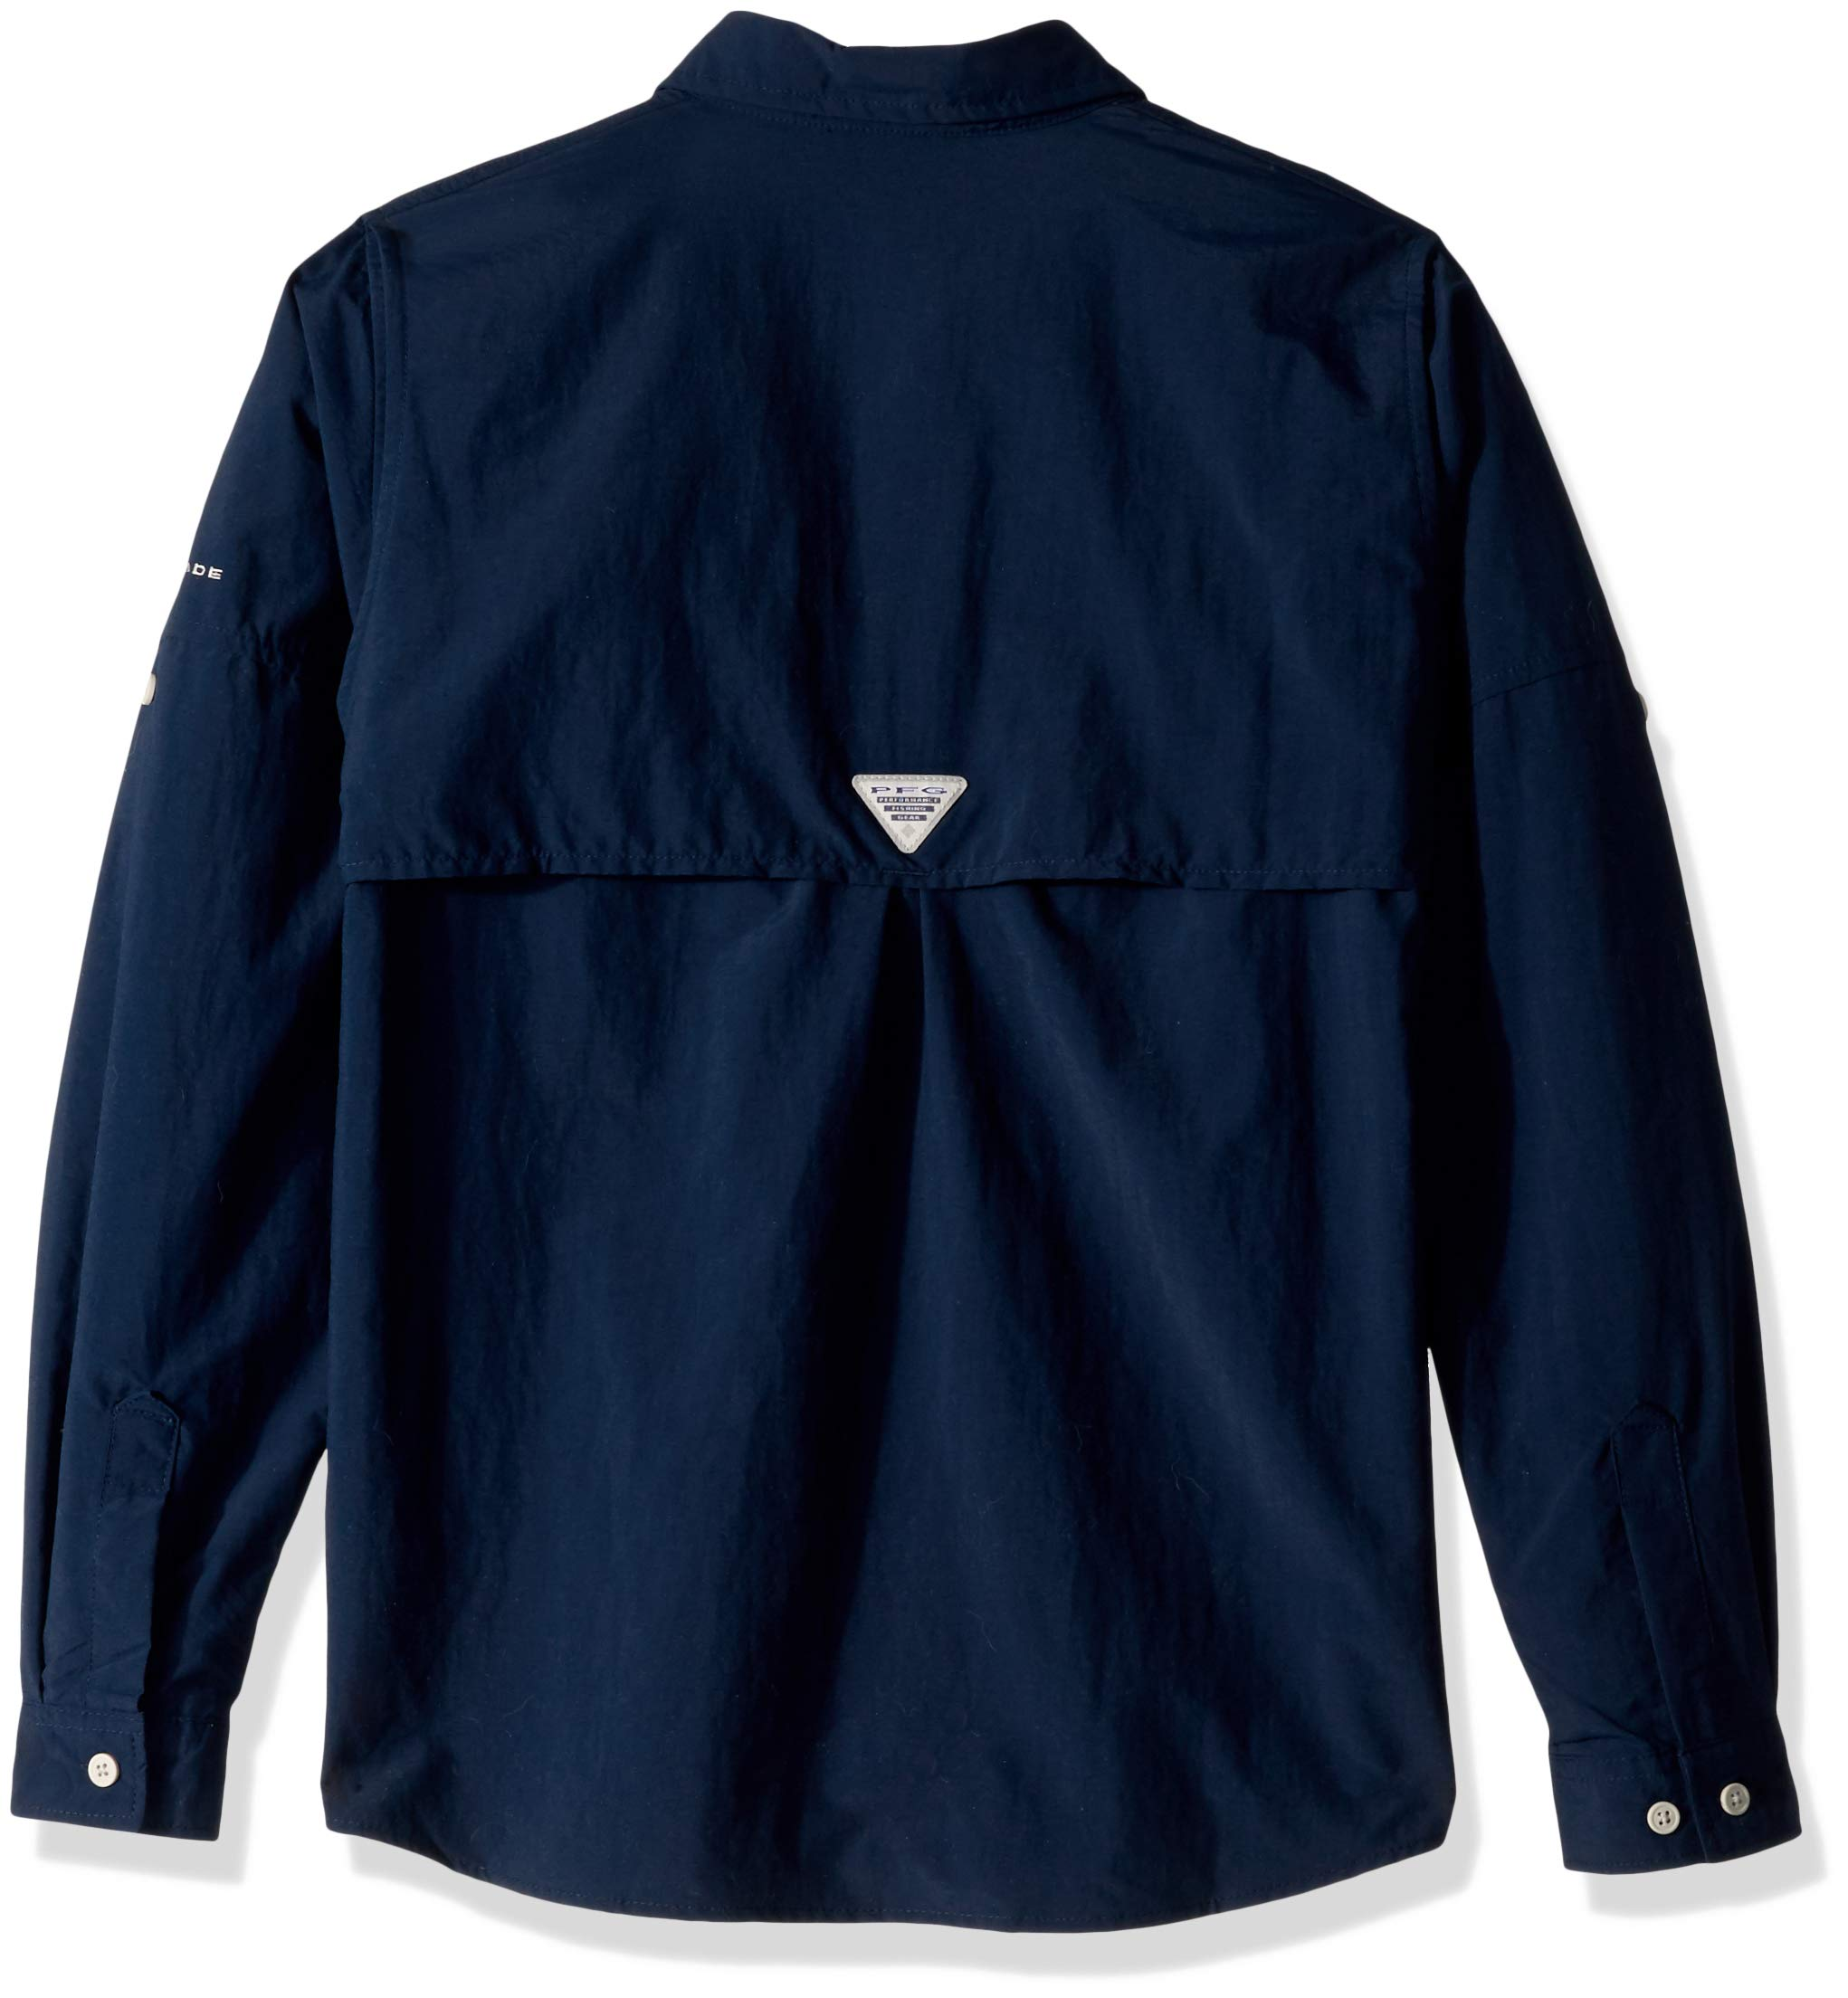 Columbia Boys PFG Bahama Long Sleeve Shirt, Collegiate Navy, Medium by Columbia (Image #2)